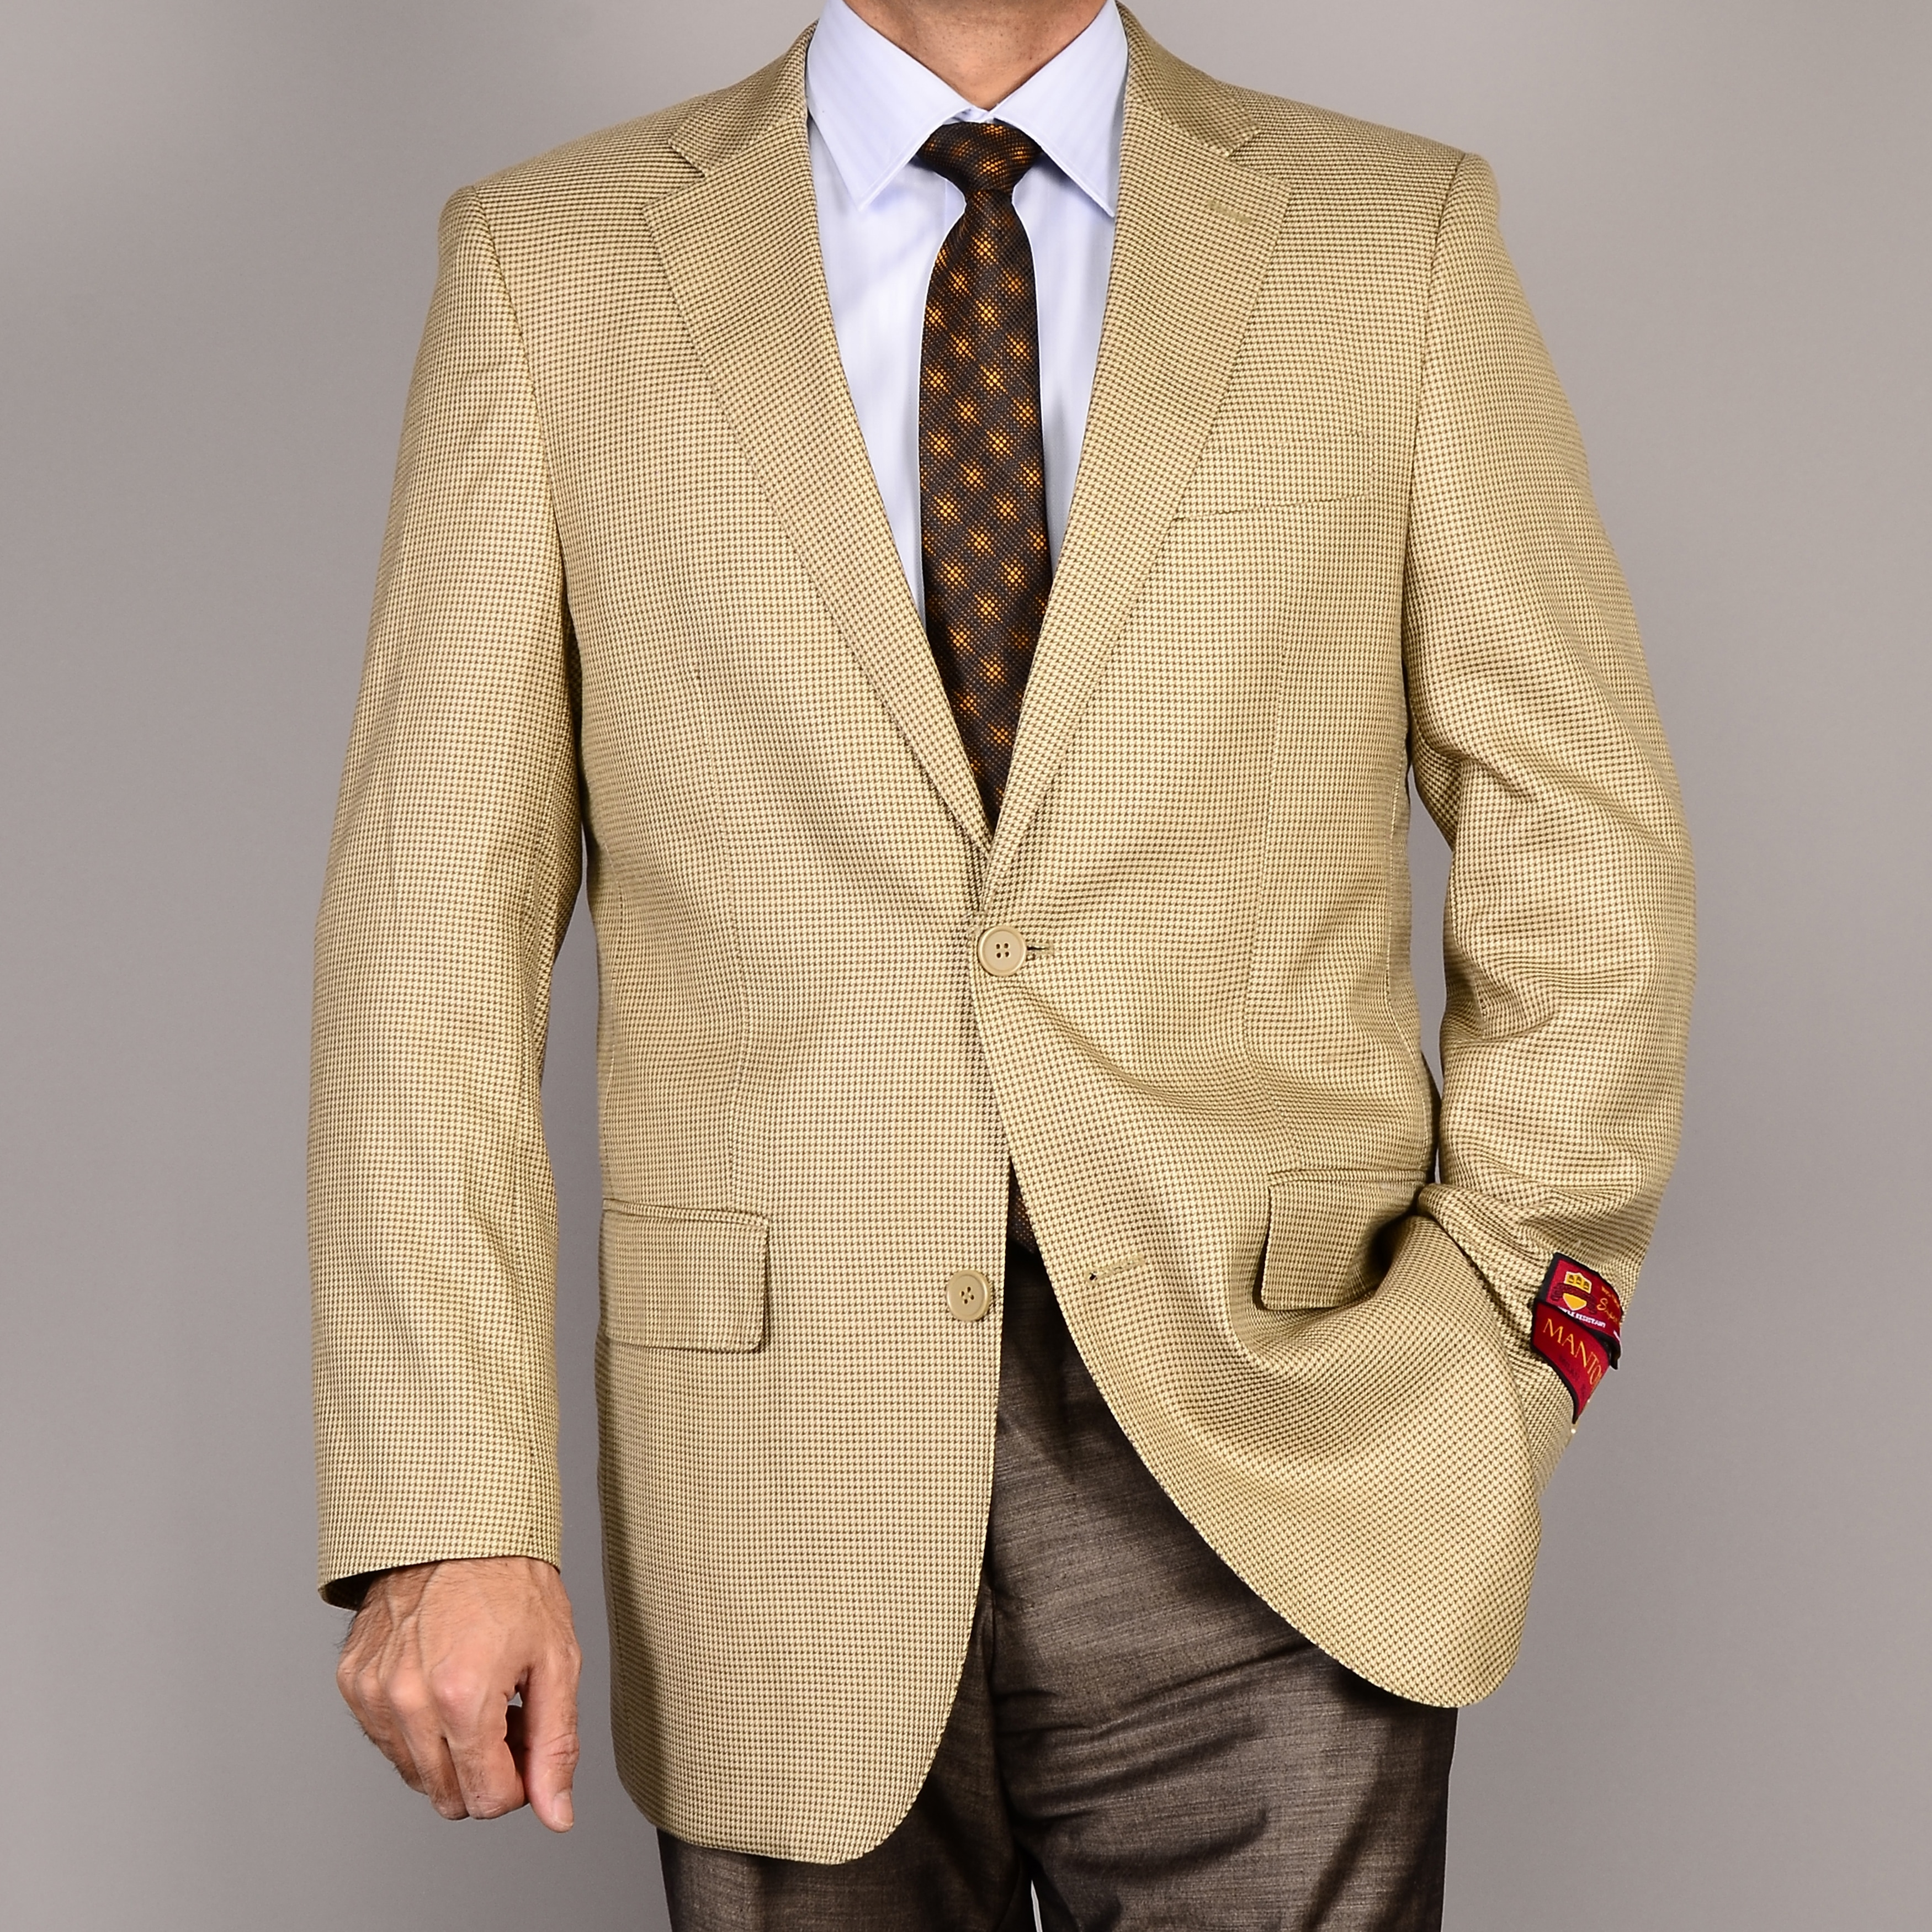 24a69d42c Shop Men's Tan 2-Button Wool Sport Coat - Free Shipping Today - Overstock -  6691233